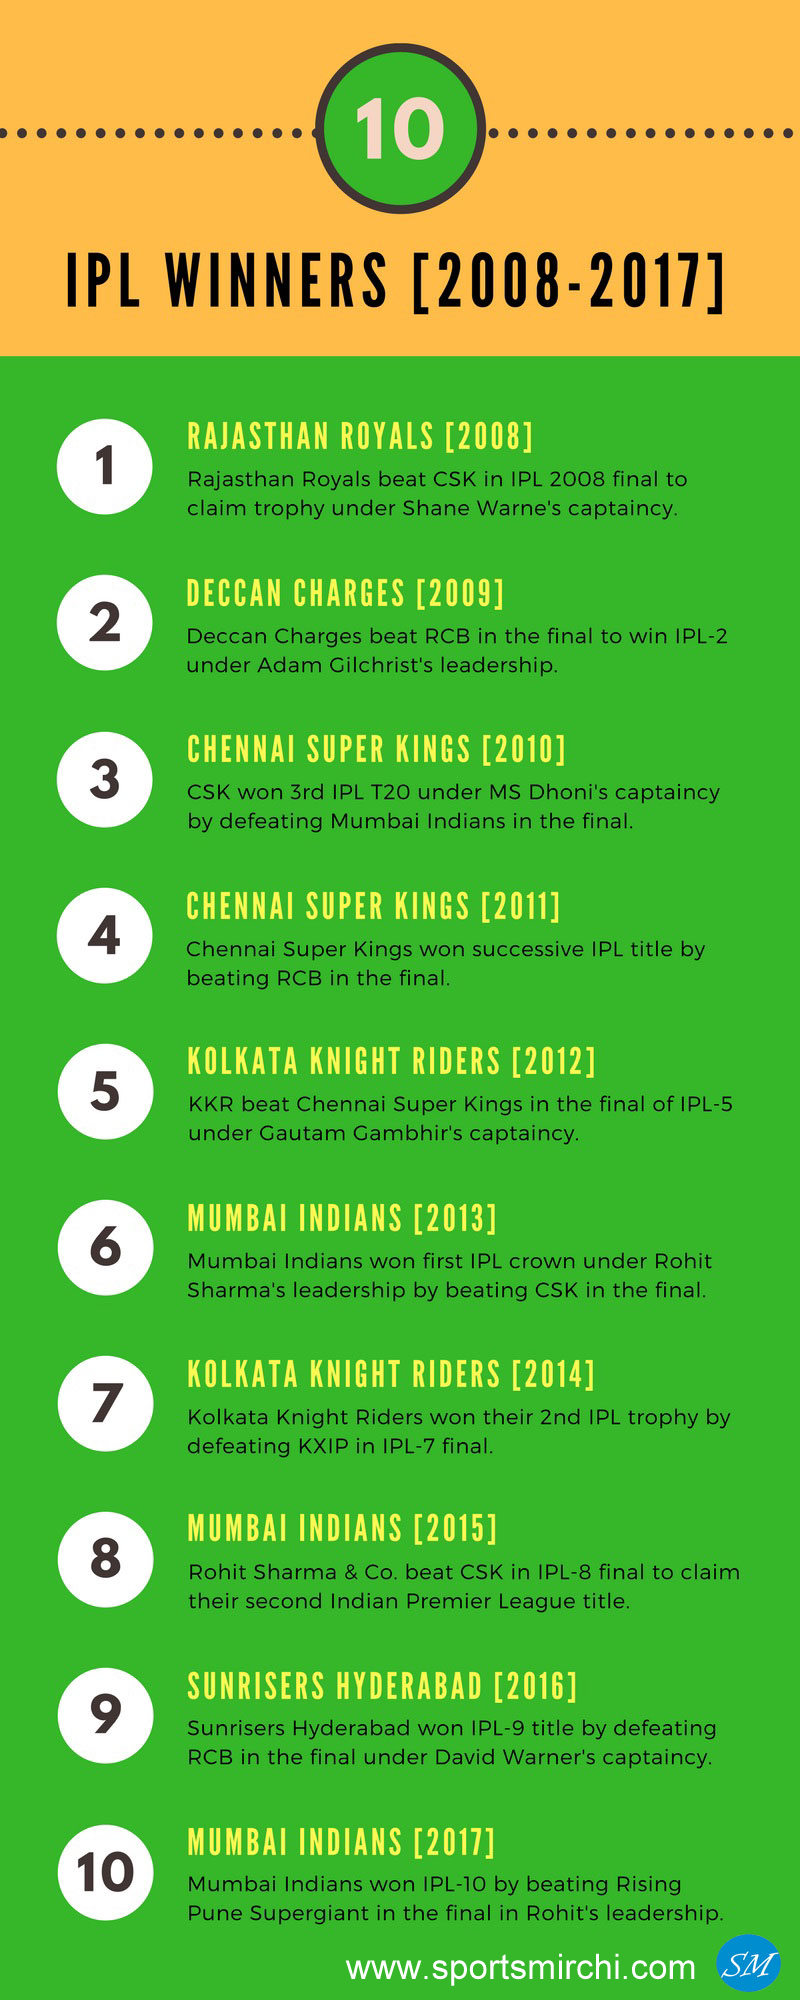 IPL Winners 2008-2017 infographic